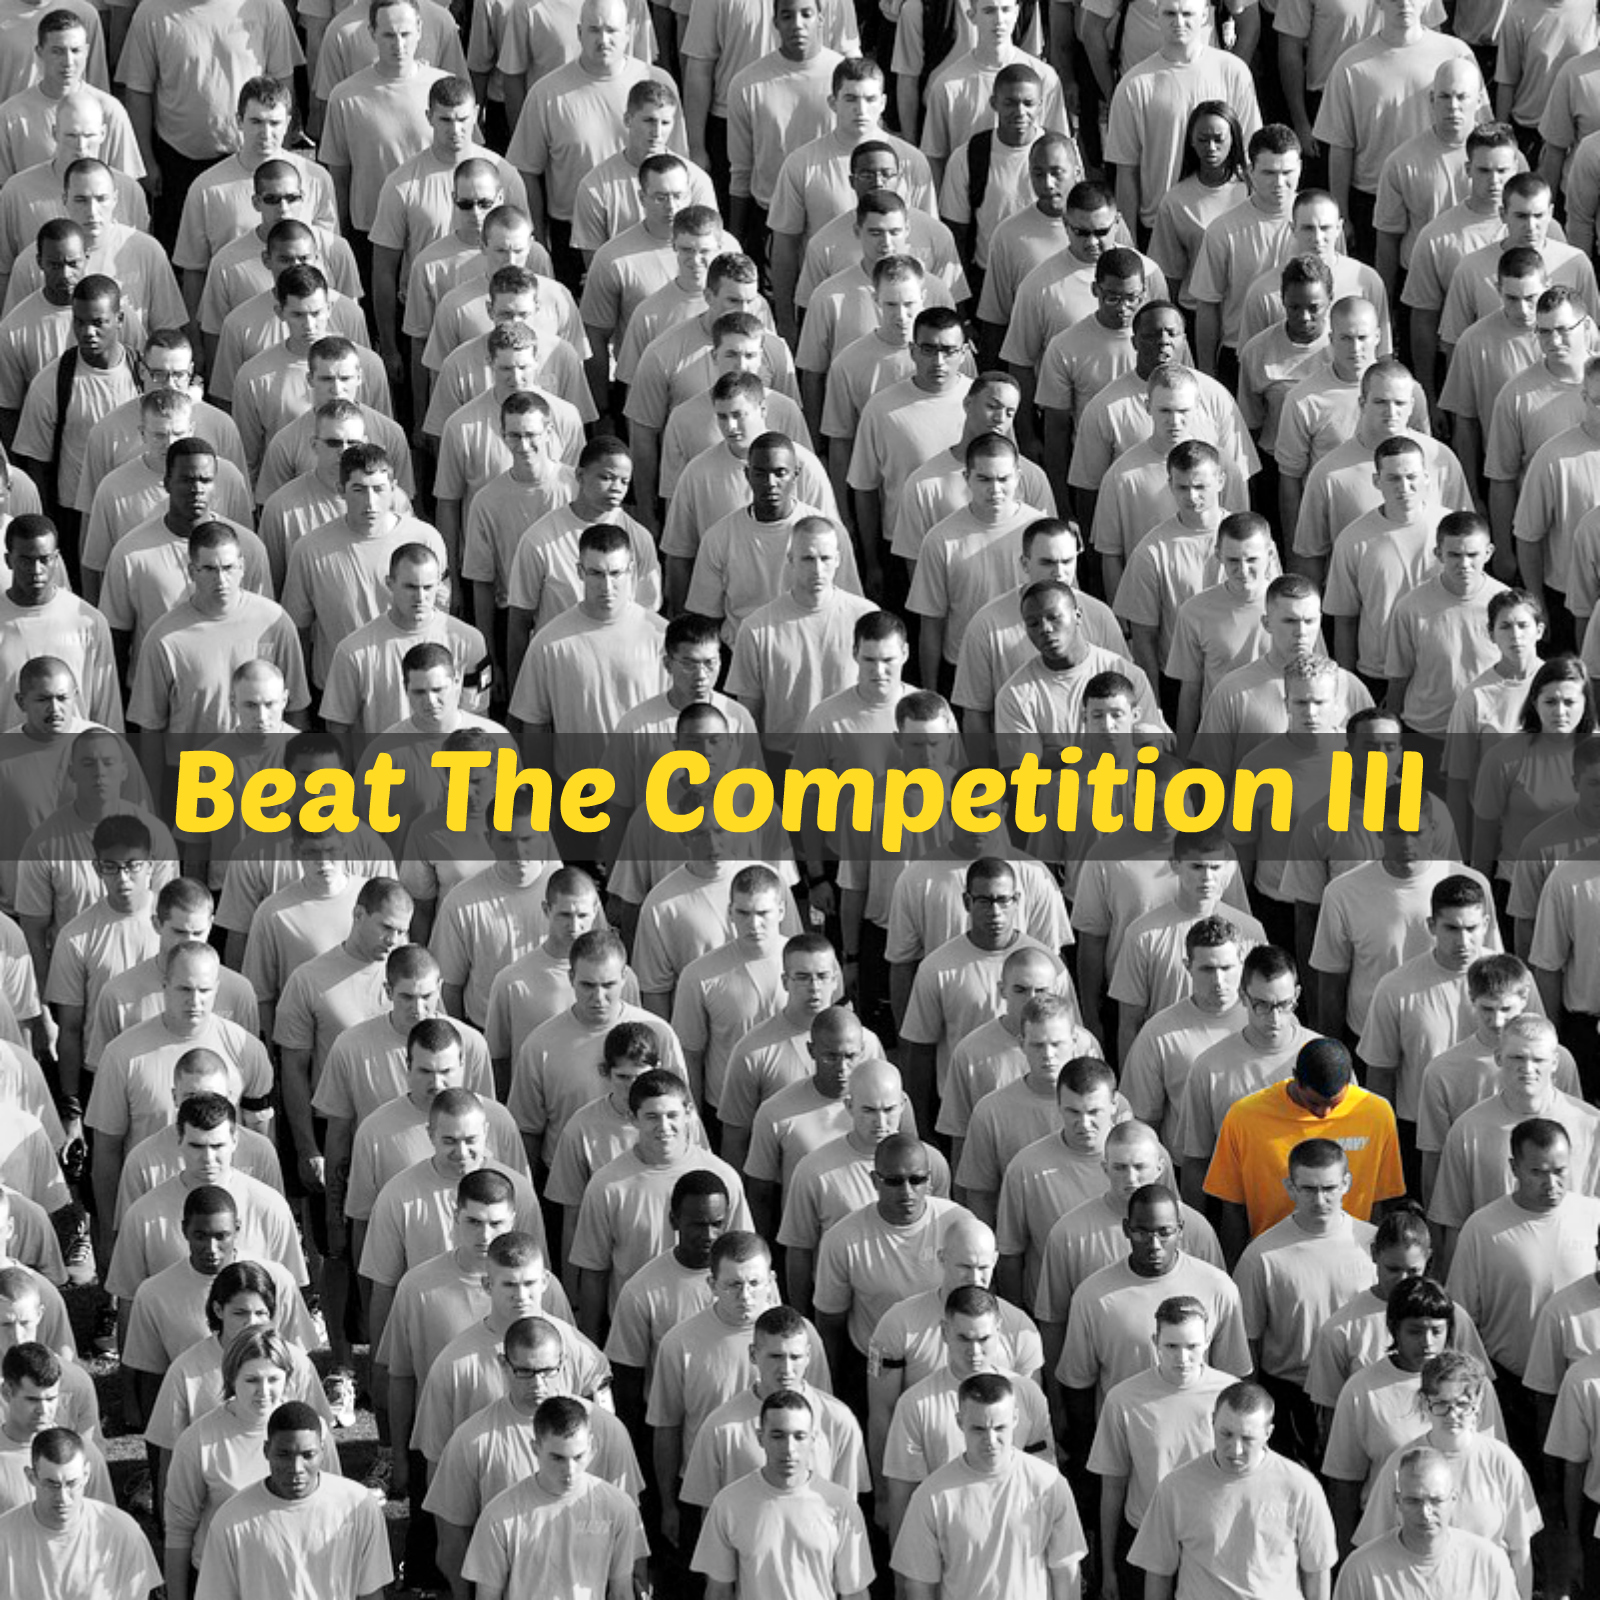 Beat The Competition III